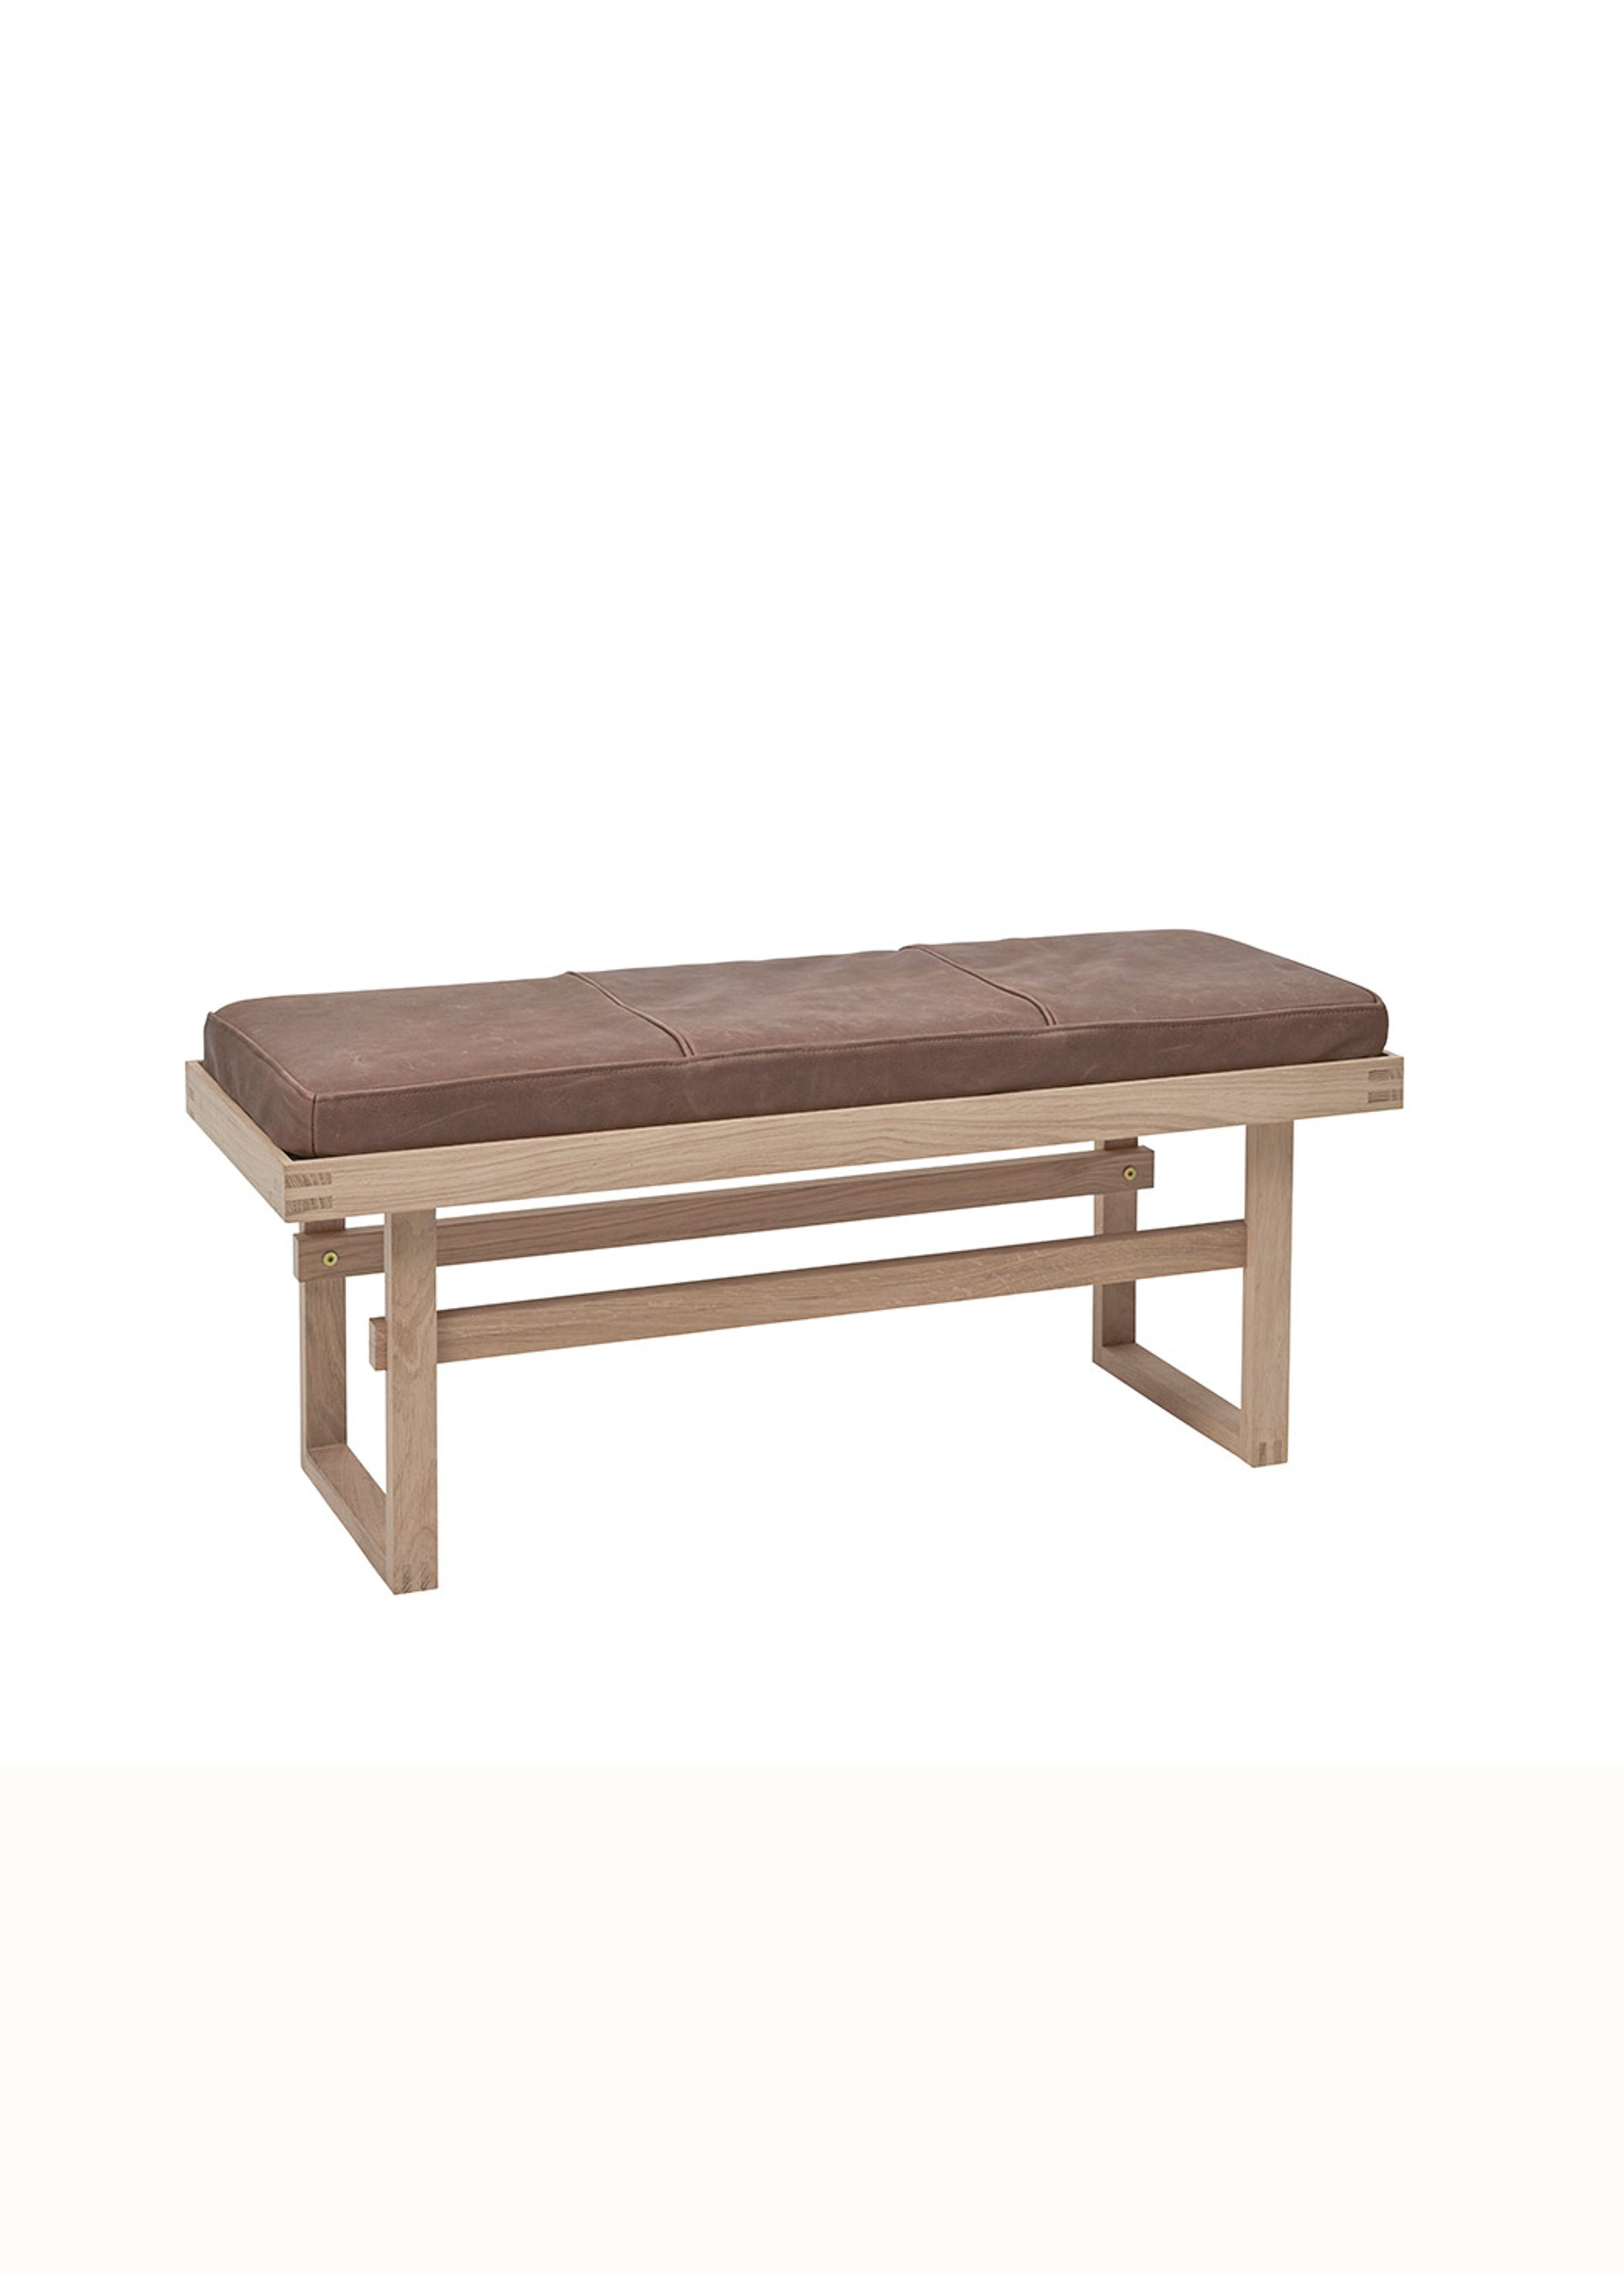 Image of   Vertical Bench